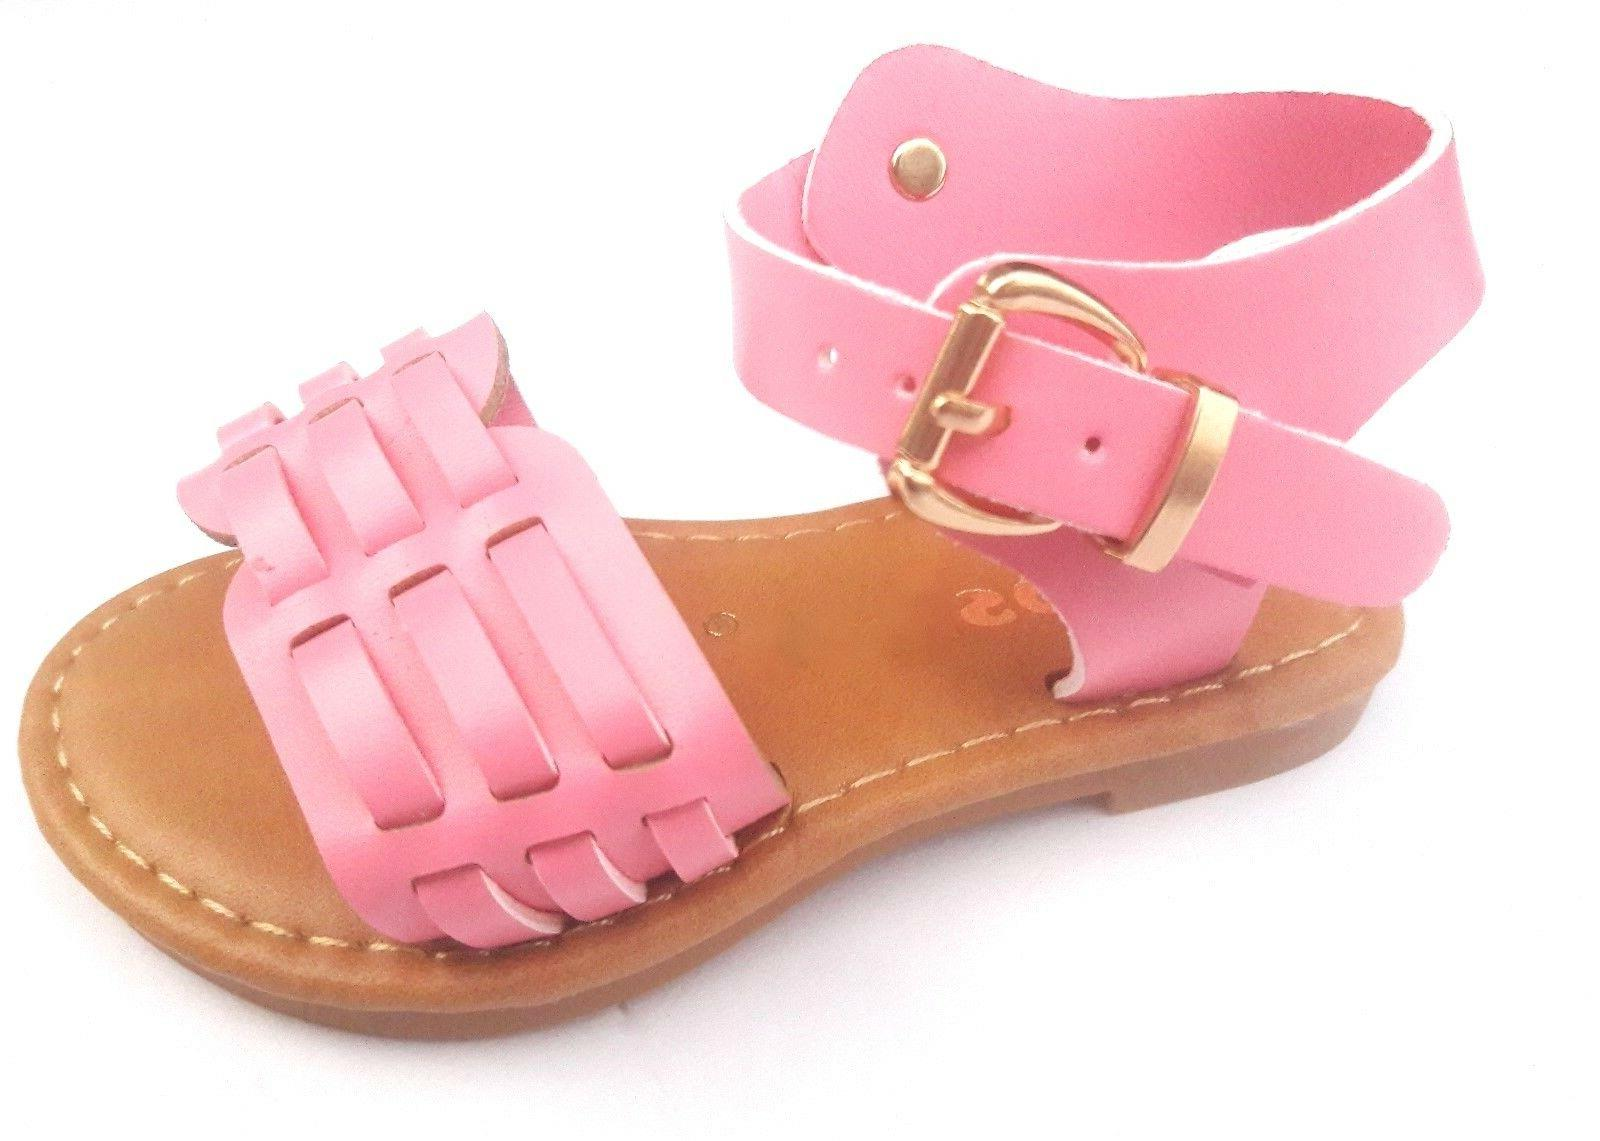 Baby toddler girls sandals shoes size